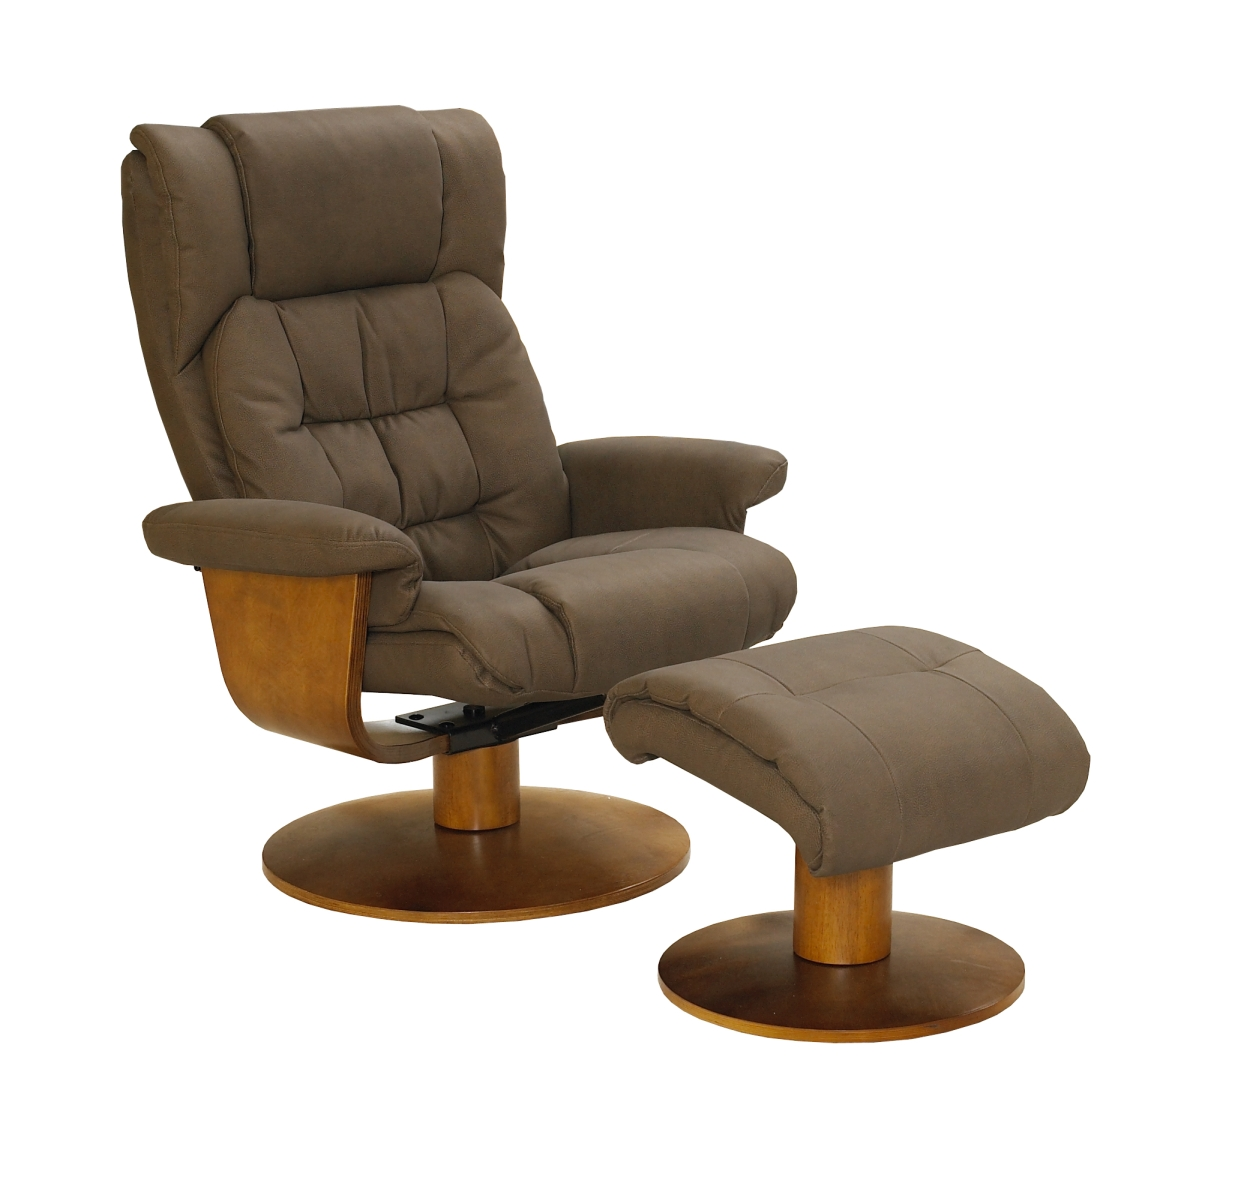 Mac Motion Vinci Euro Recliner And Ottoman In Chocolate